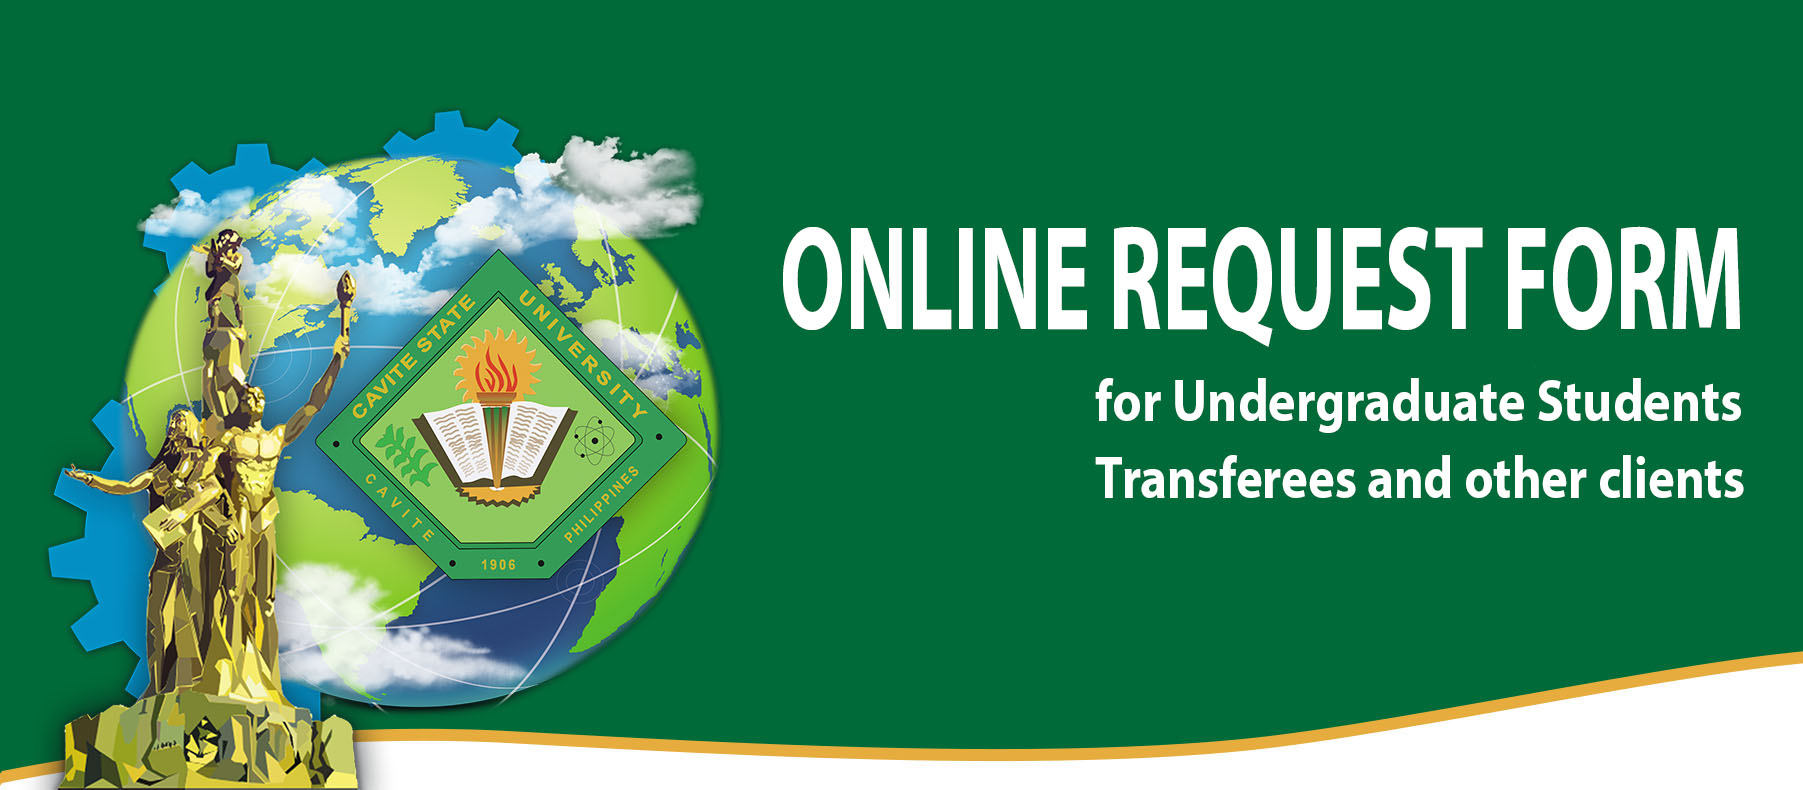 REQUEST FORM FOR CREDENTIALS OF UNDERGRADUATE STUDENTS, TRANSFEREES AND OTHER CLIENTS